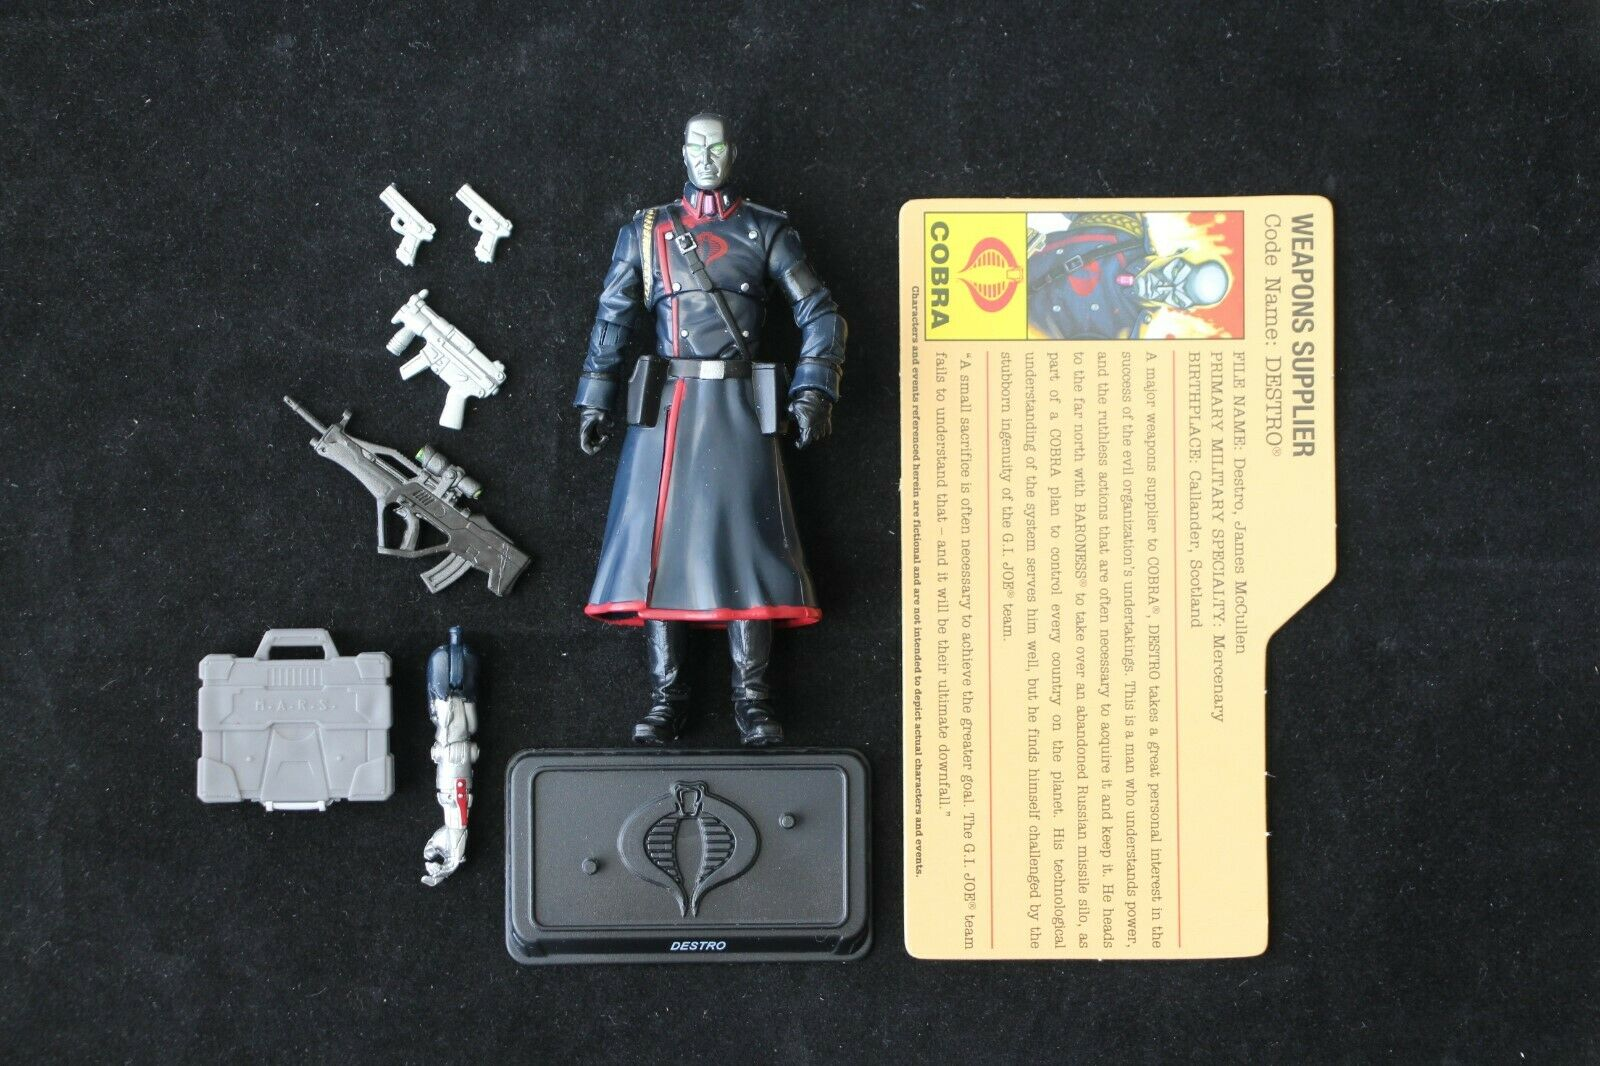 GI Joe Hasbro Resolute Battle Set 7 Pack Destro Figure Complete Mint